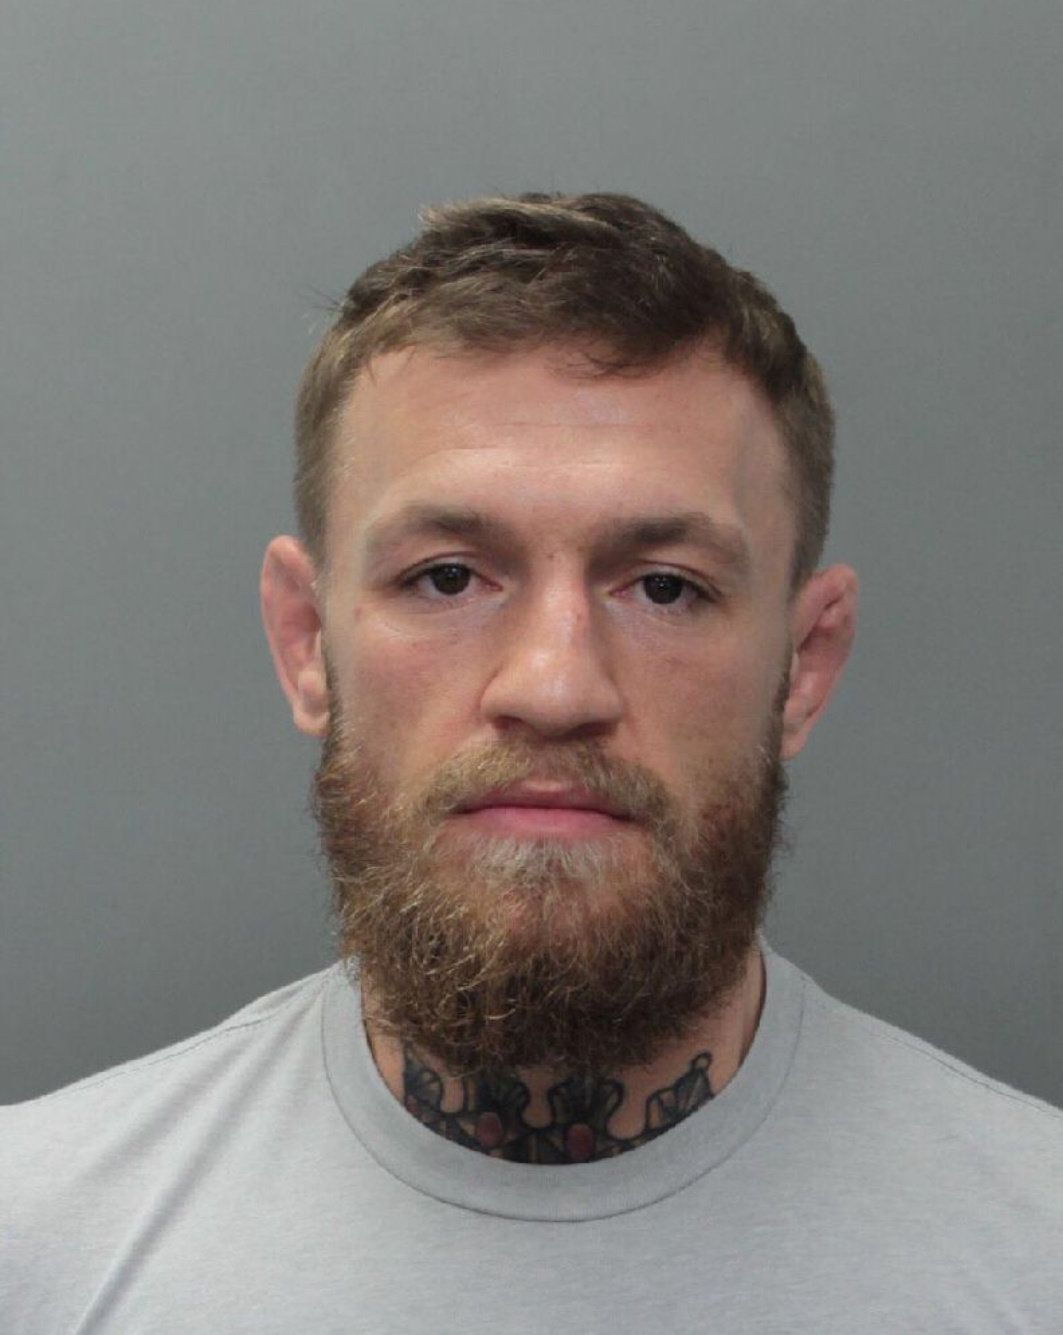 UFC fighter Conor McGregor appears in a police booking photo at Miami-Dade County Jail in Miami, Florida, U.S. March 11, 2019.  Miami-Dade County Corrections/Handout via REUTERS ATTENTION EDITORS - THIS IMAGE WAS PROVIDED BY A THIRD PARTY.